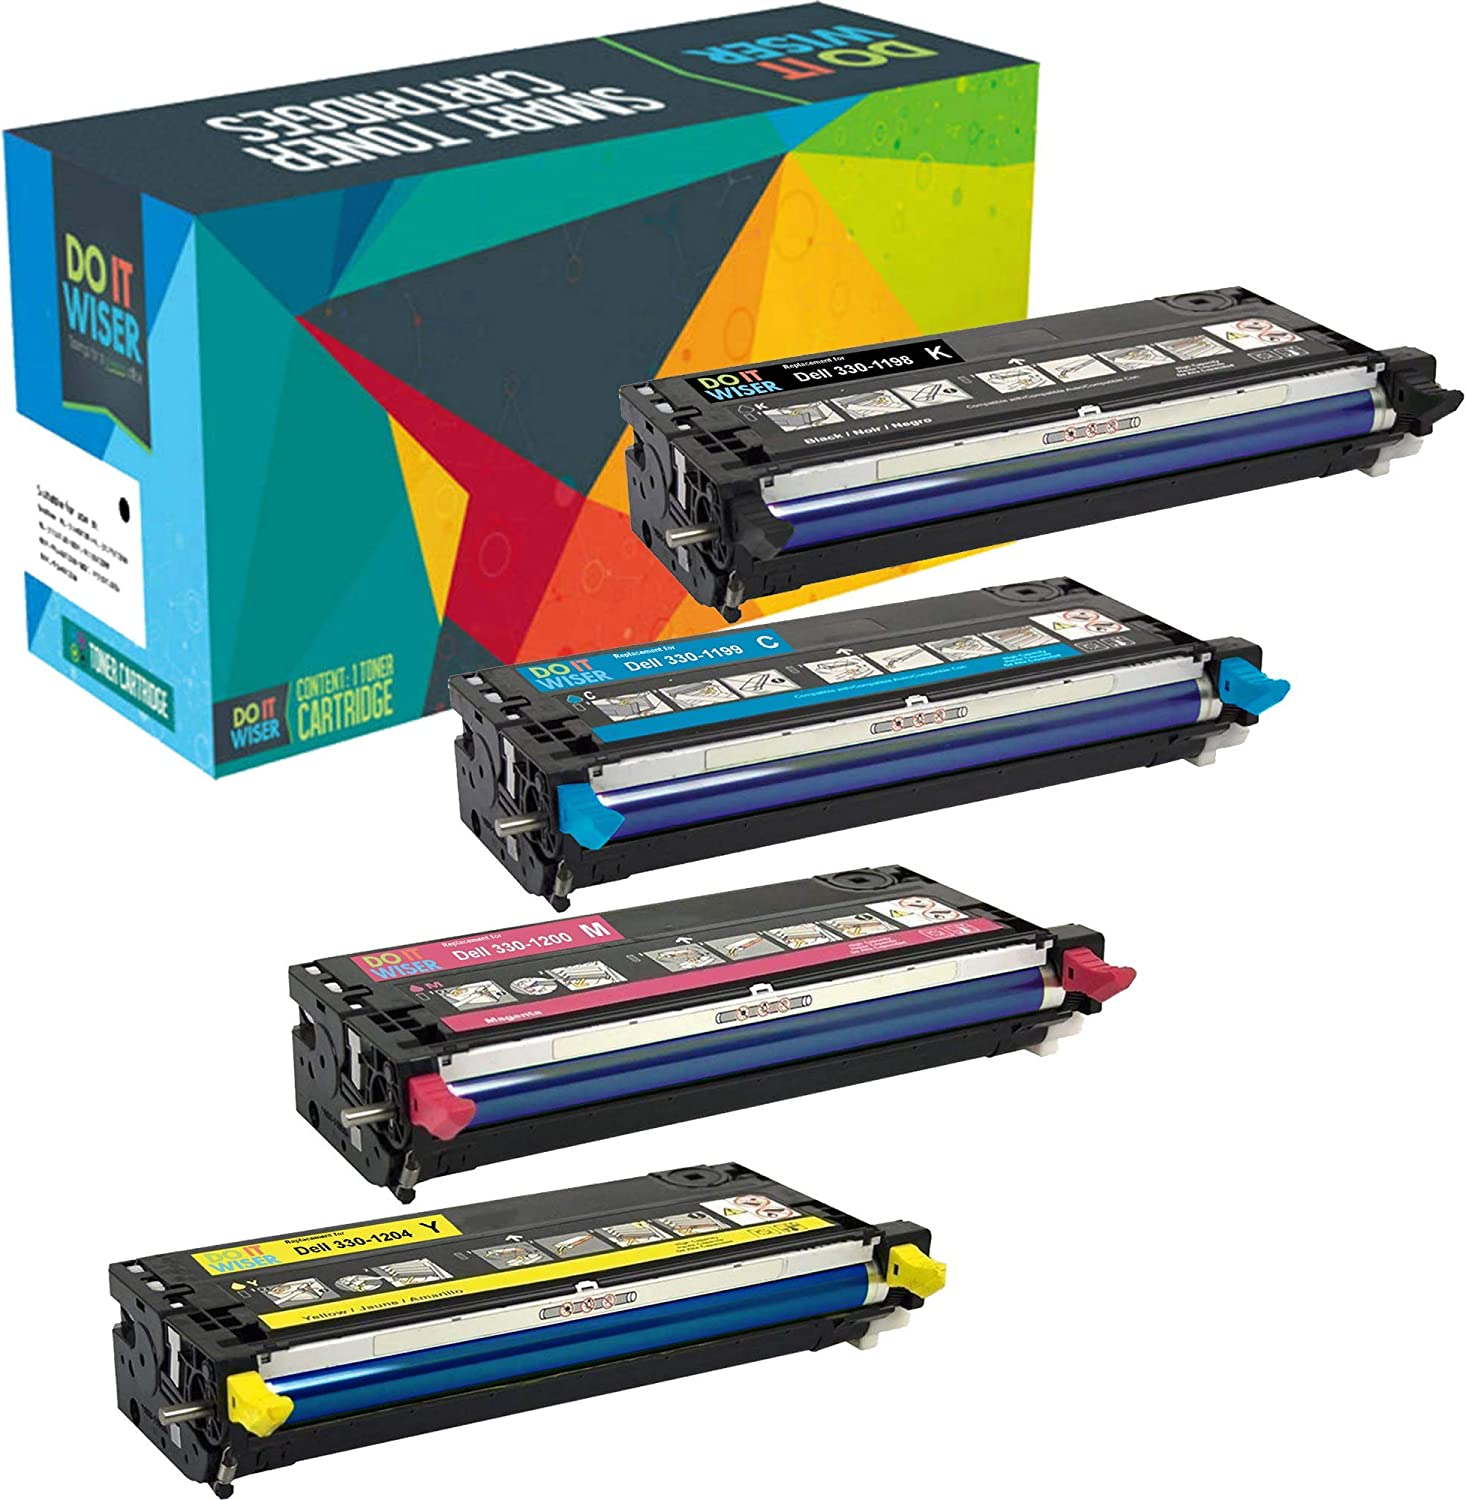 Do it Wiser Compatible Toner Cartridge Replacement for Dell 3130 3130cn 3130cdn - 4-Pack High Yield